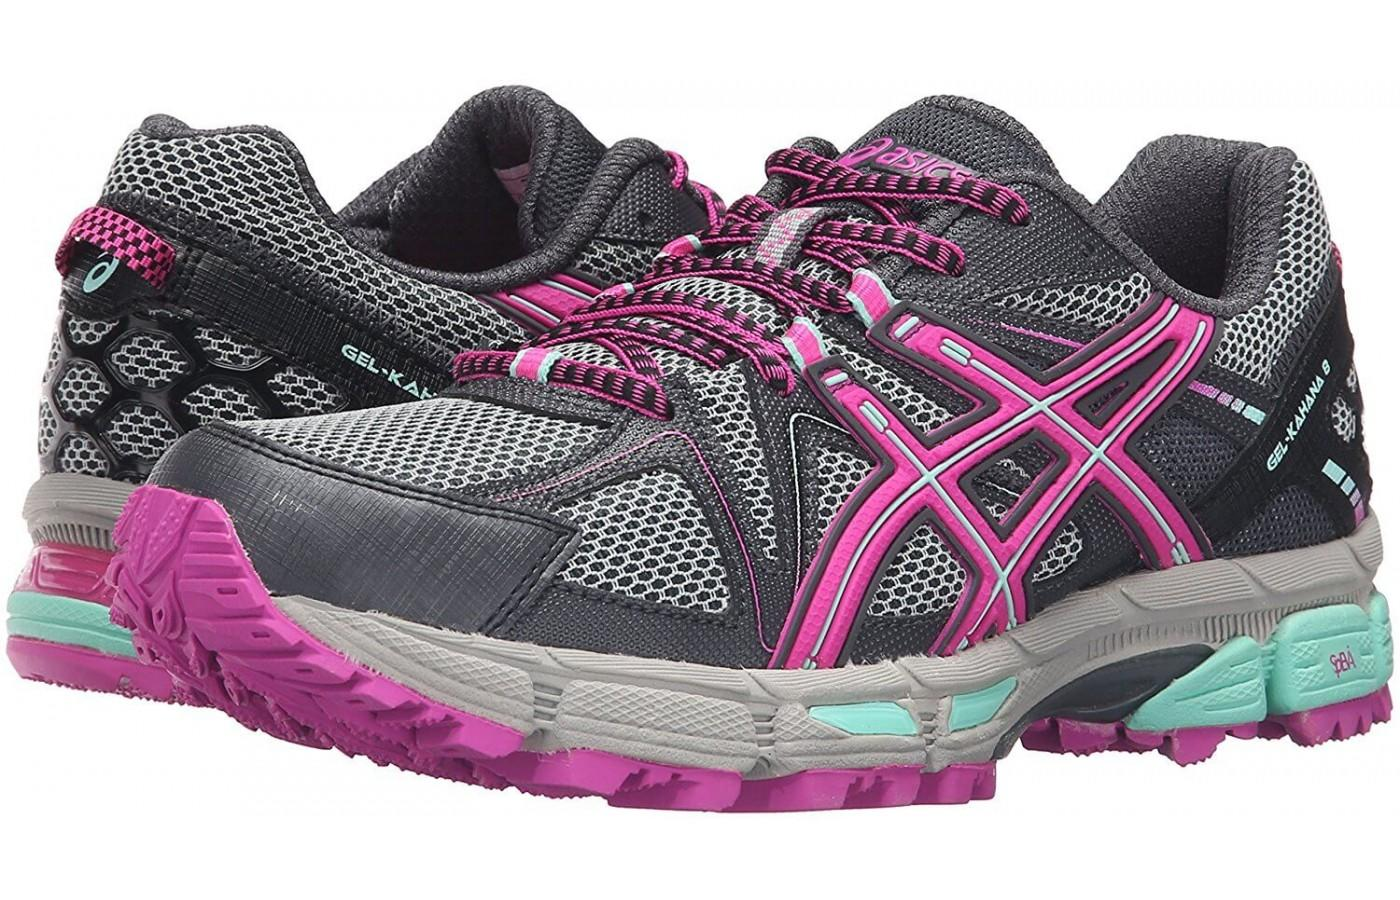 Featuring a breathable mesh upper with a sole unit built for comfort and confidence